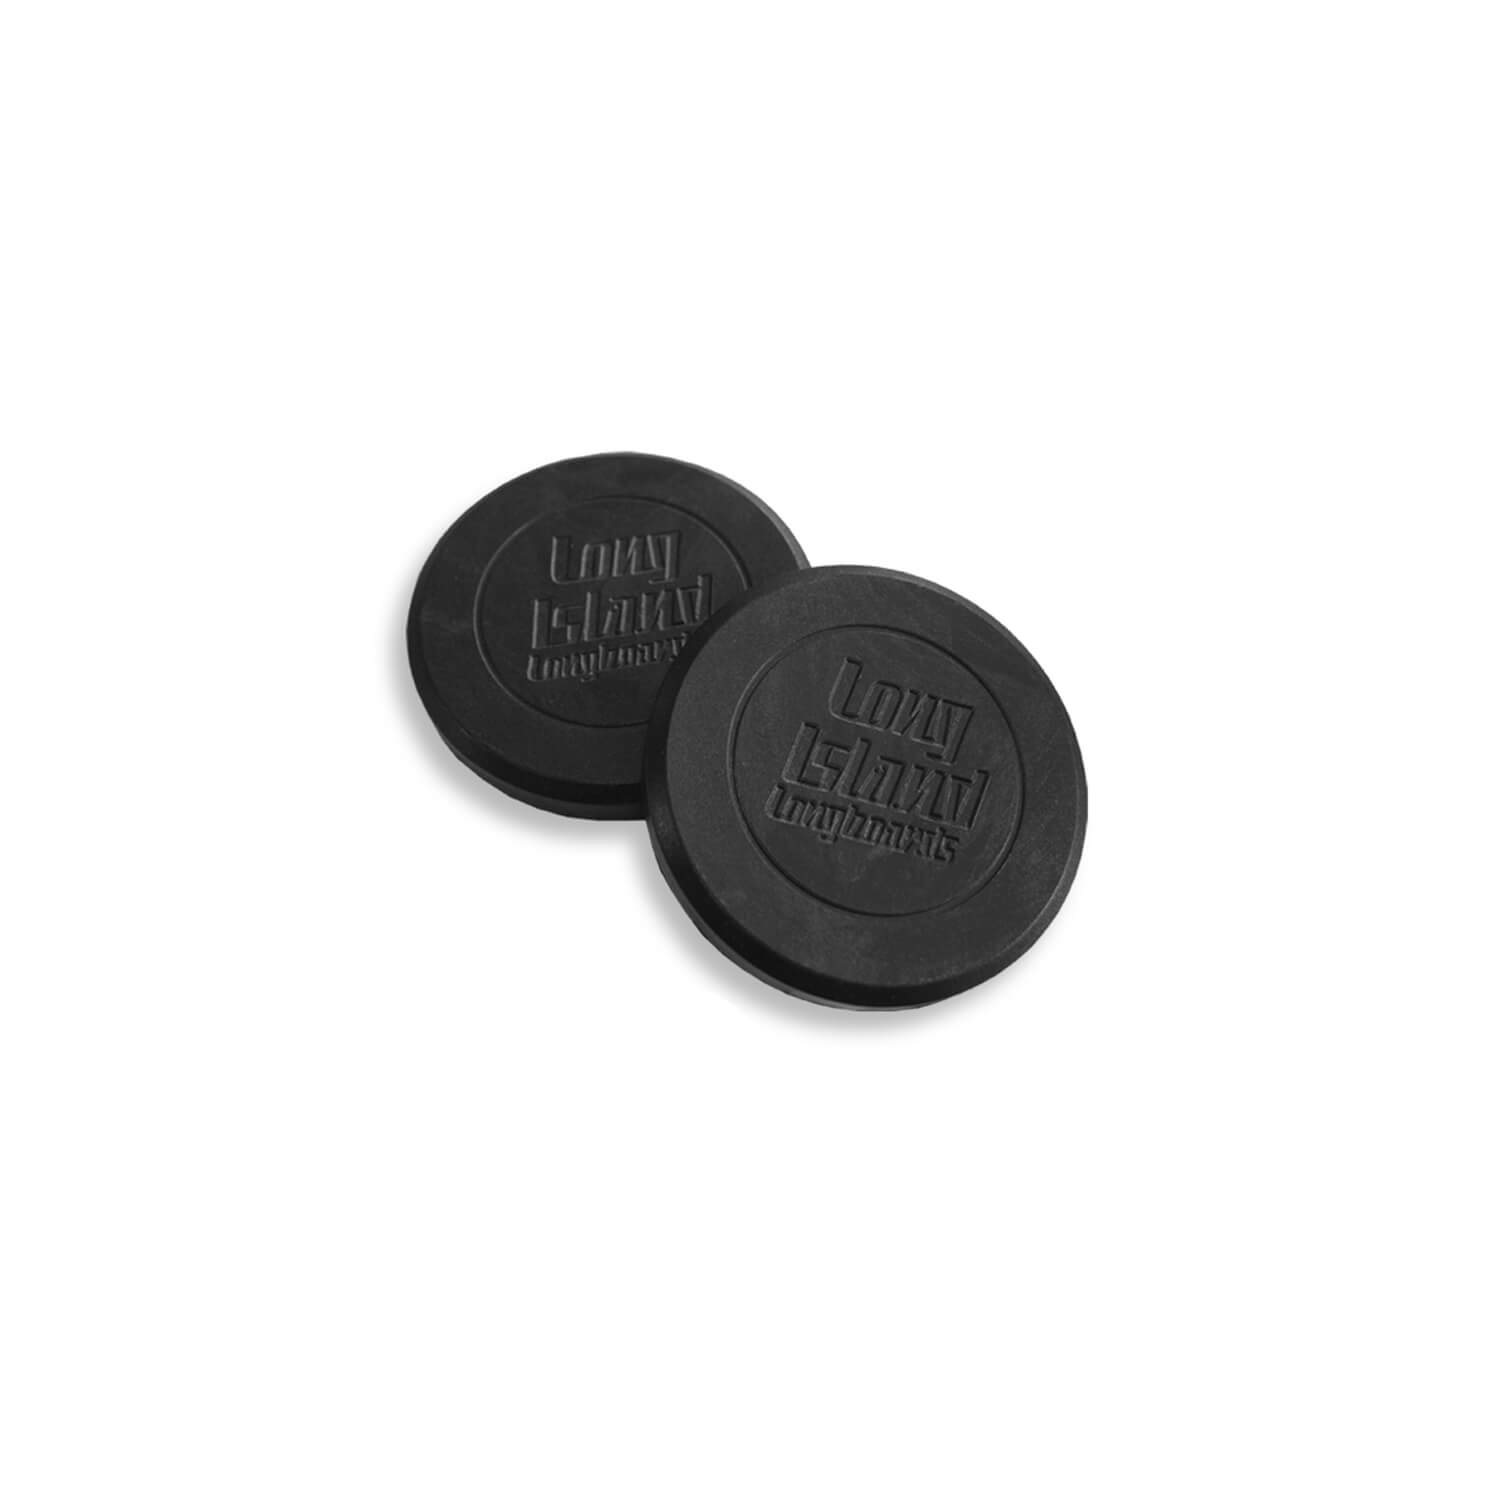 Long Island Slide Pucks